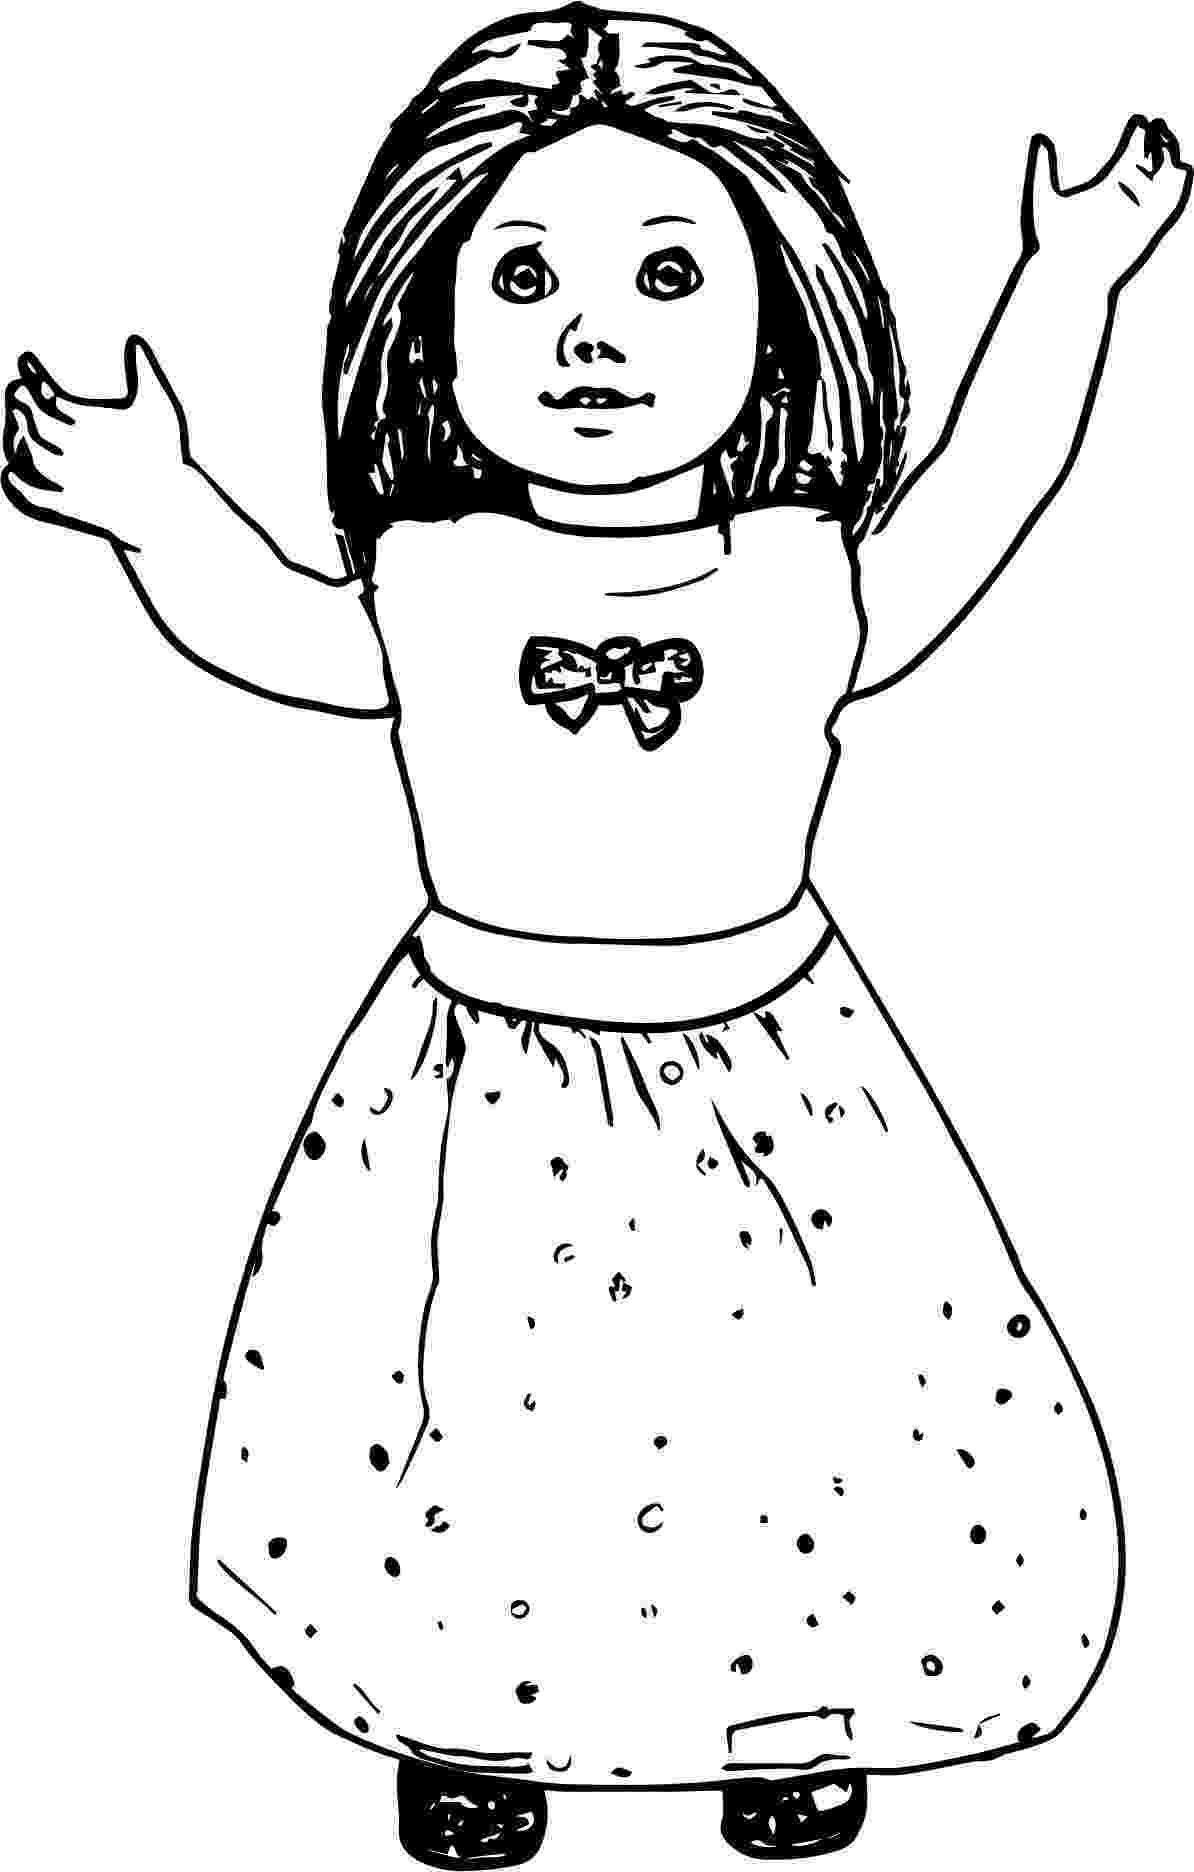 american girl doll coloring pages american girl coloring page coloring doll pages girl american